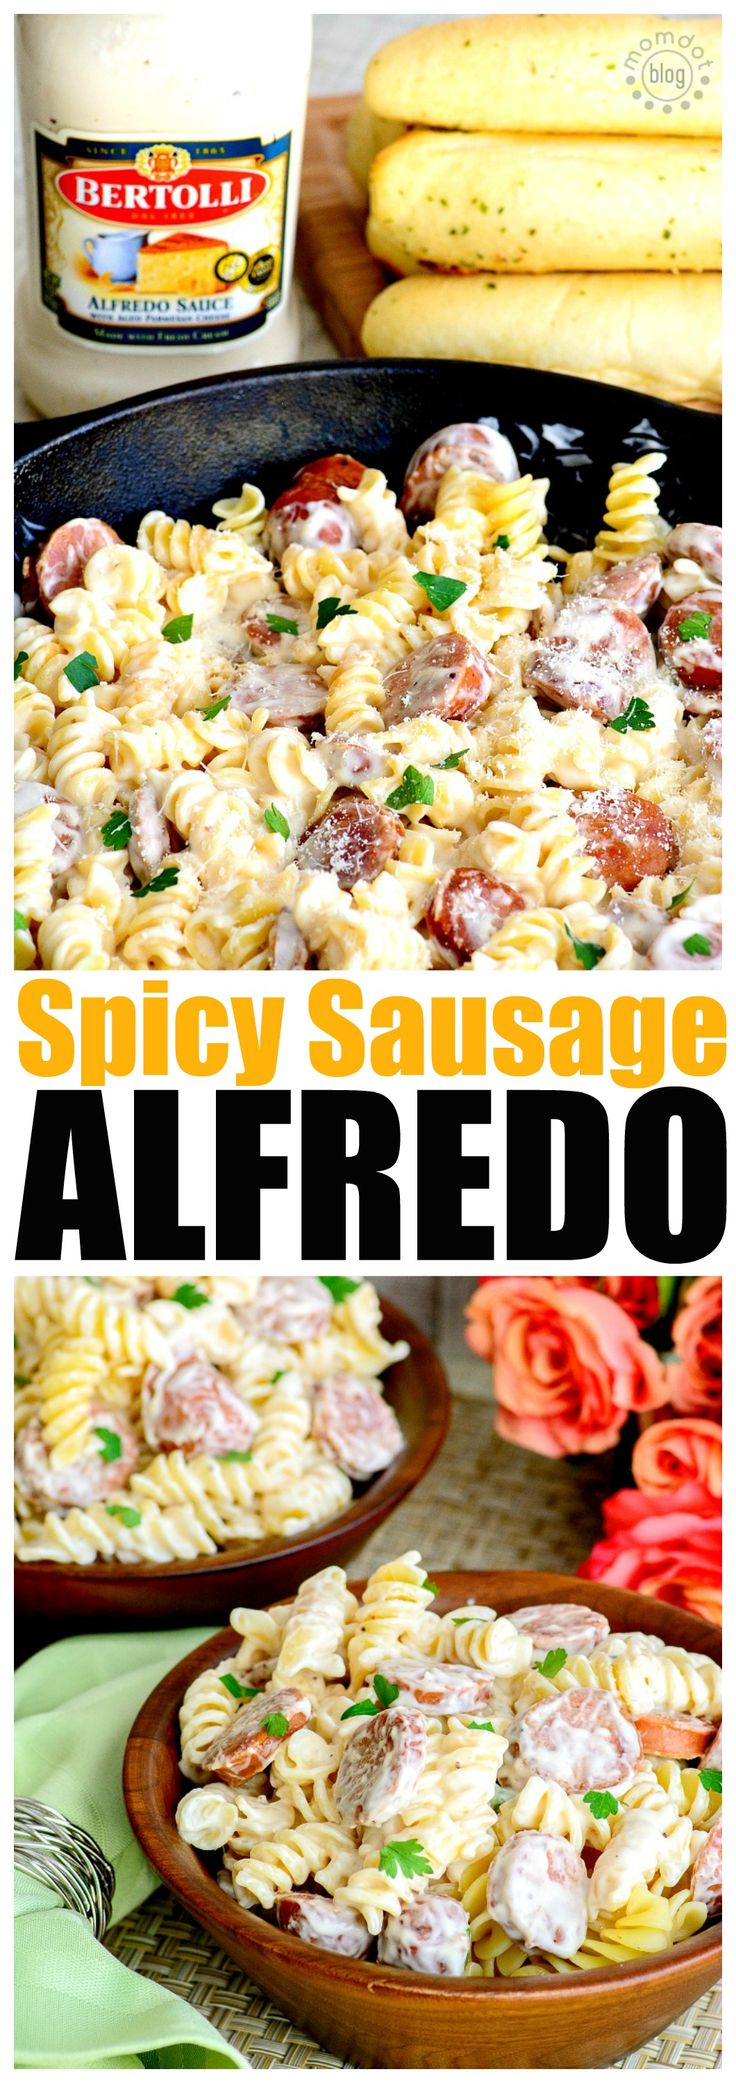 Spicy sausage alfredo recipe perfect for pasta for two with this easy to follow recipe and inexpensive to create. Enjoy Valentines dinner for two from the comfort of your own home